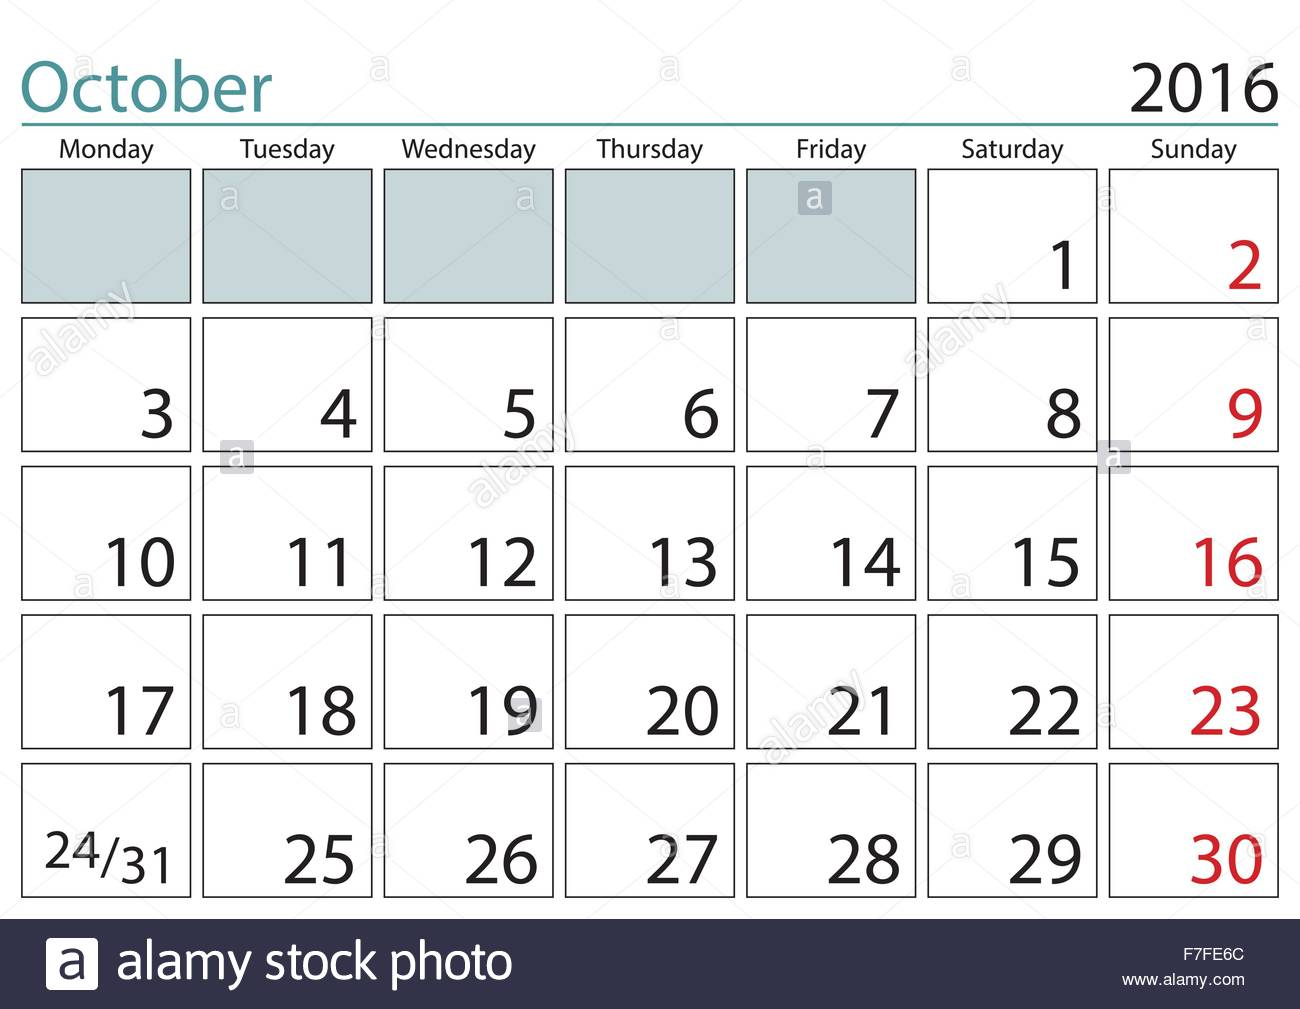 october 2016 sheet in a wall calendar in english week starts on monday